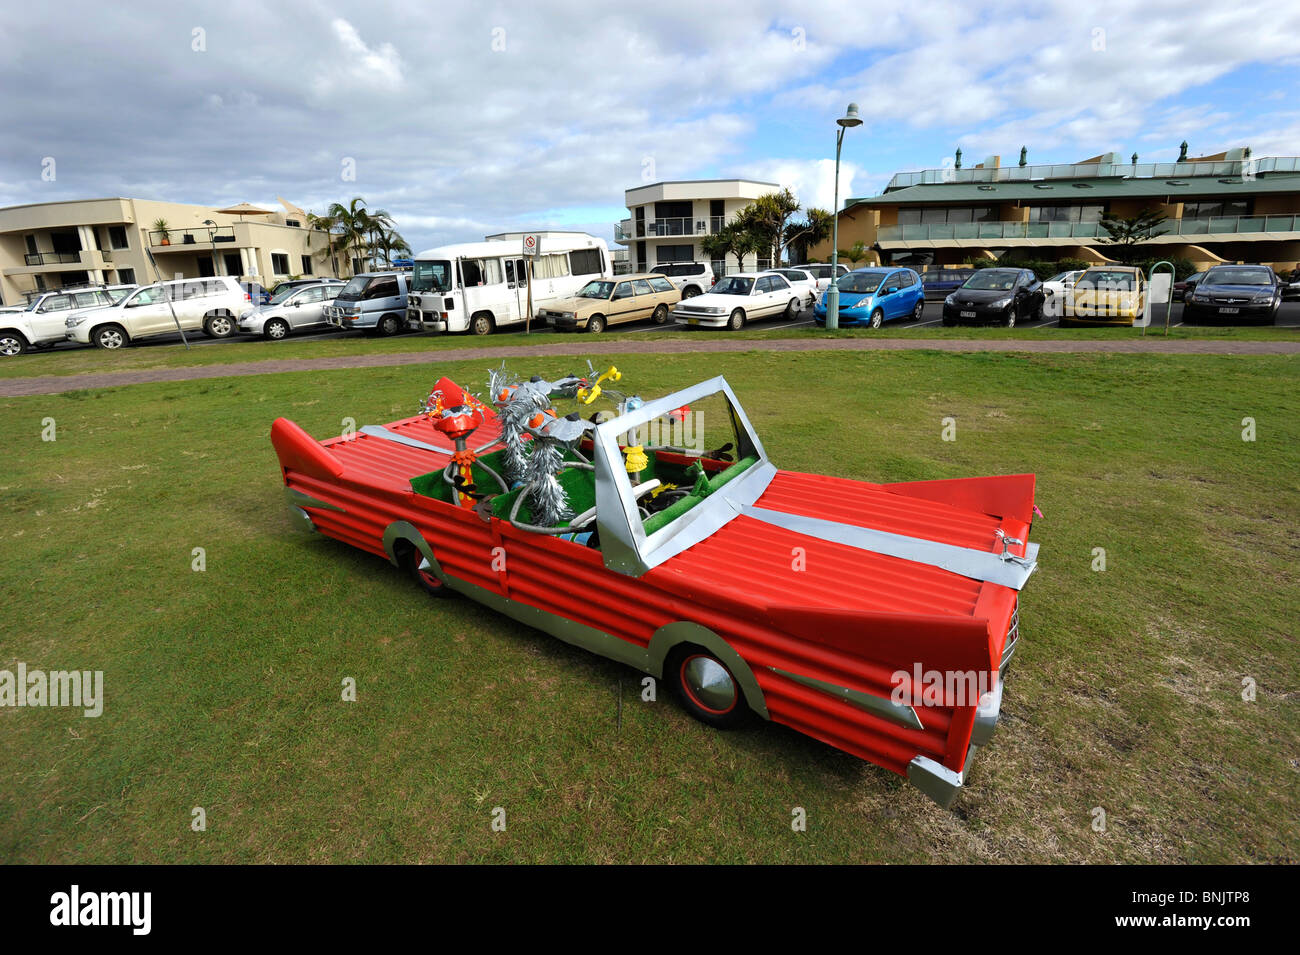 A crazy stylized car made by an artist Annie Younger at Byron Bay Australia - Stock Image